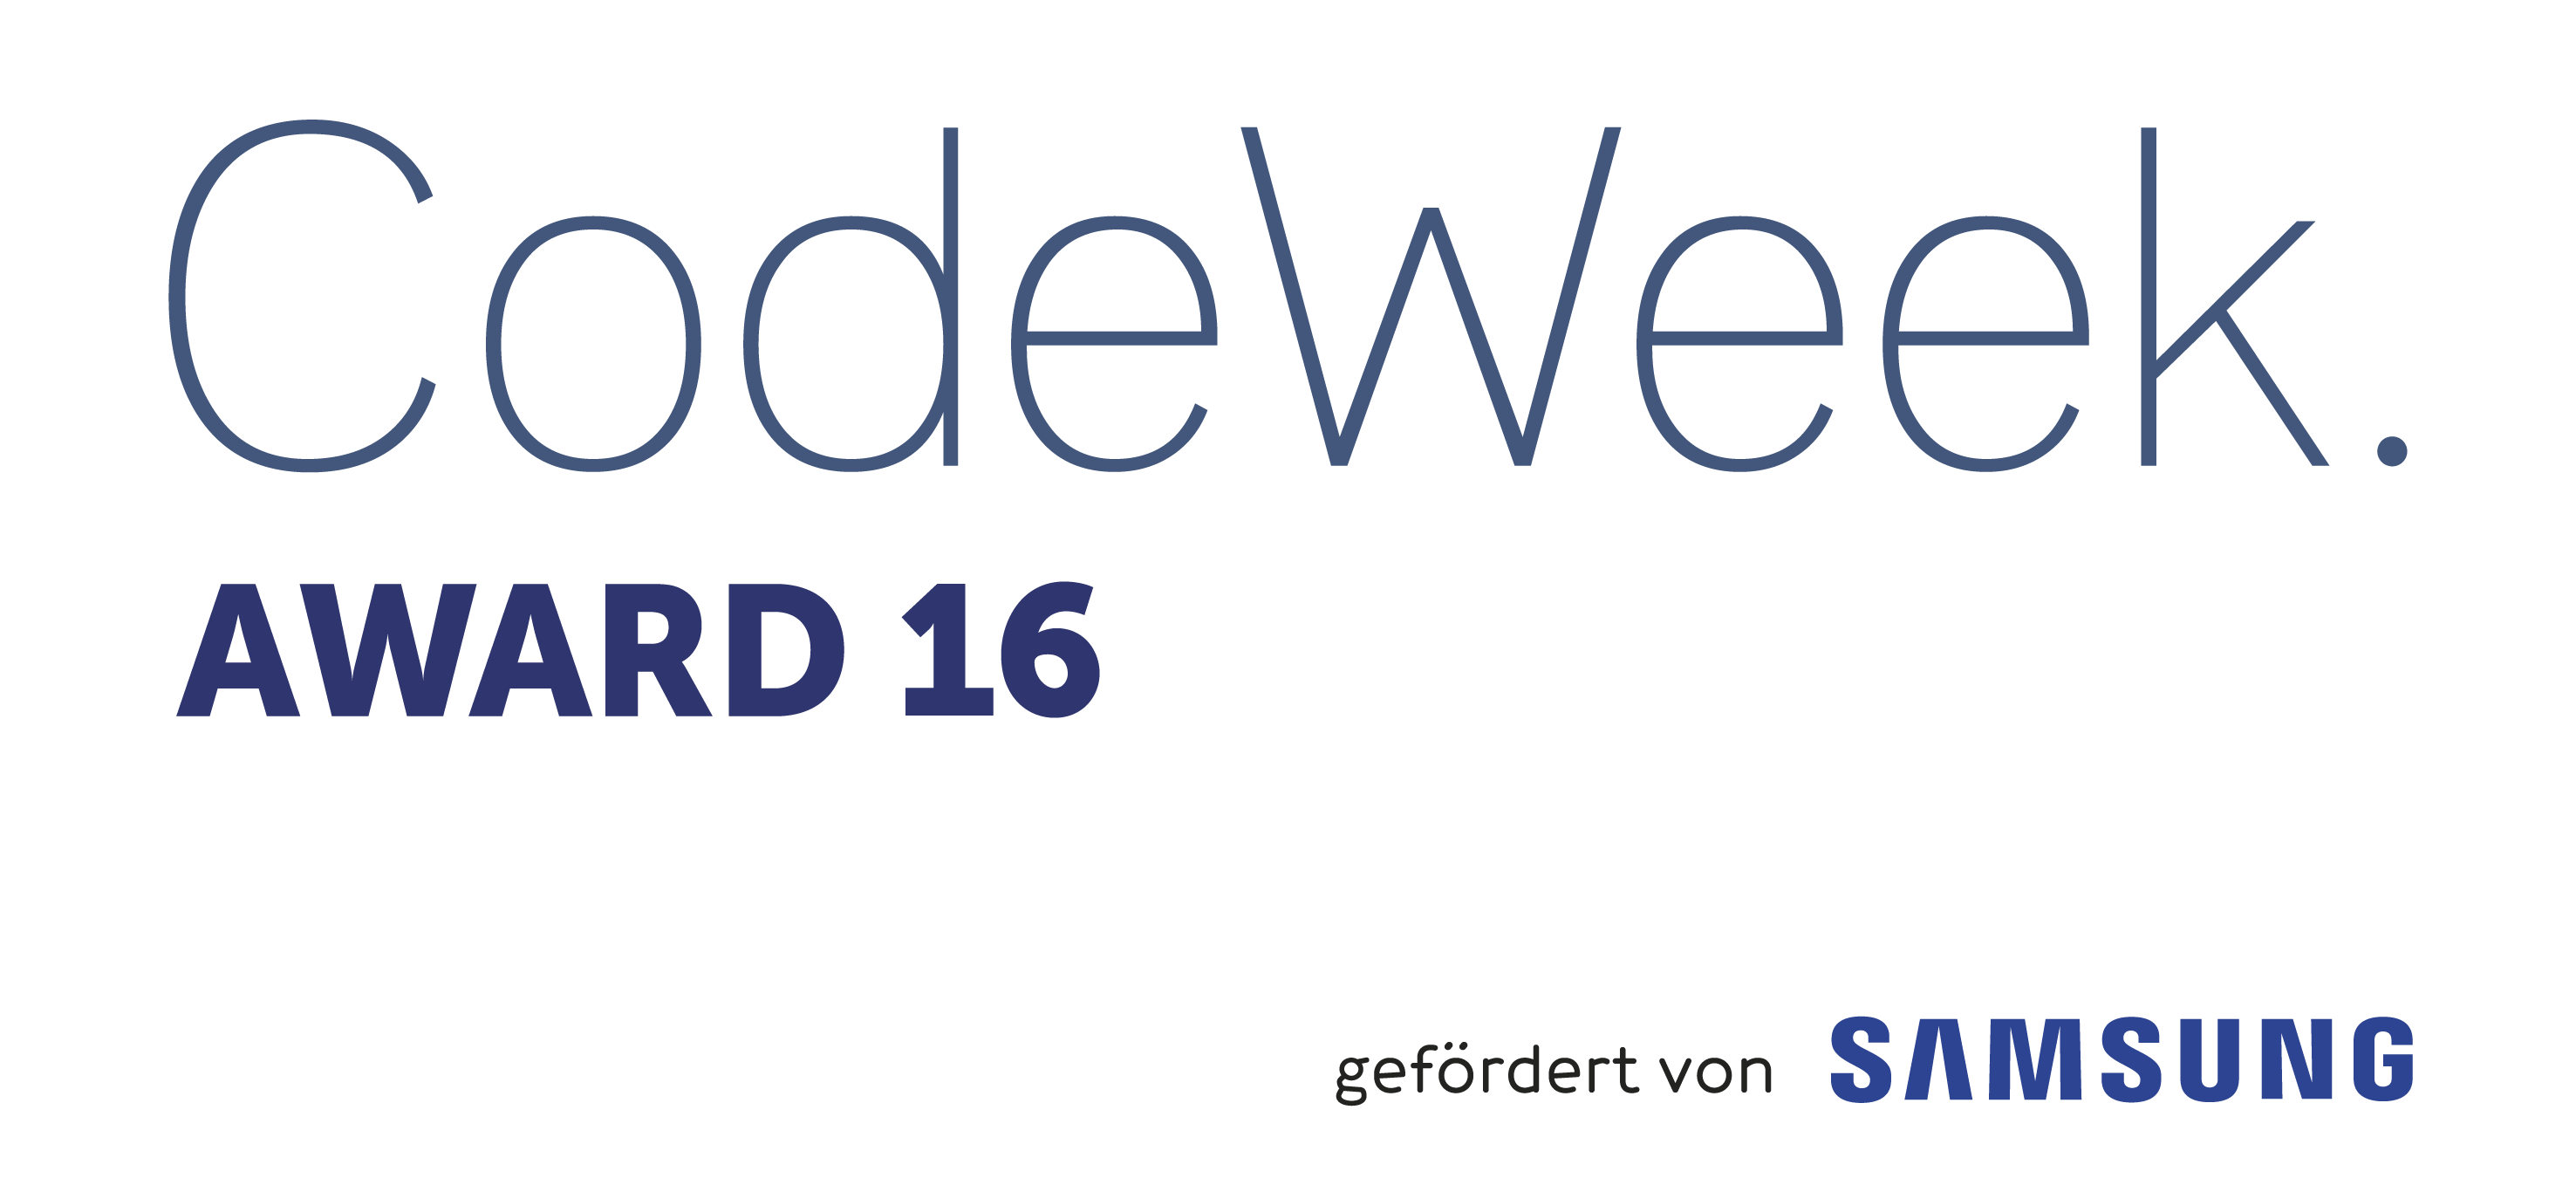 logo codeweekaward